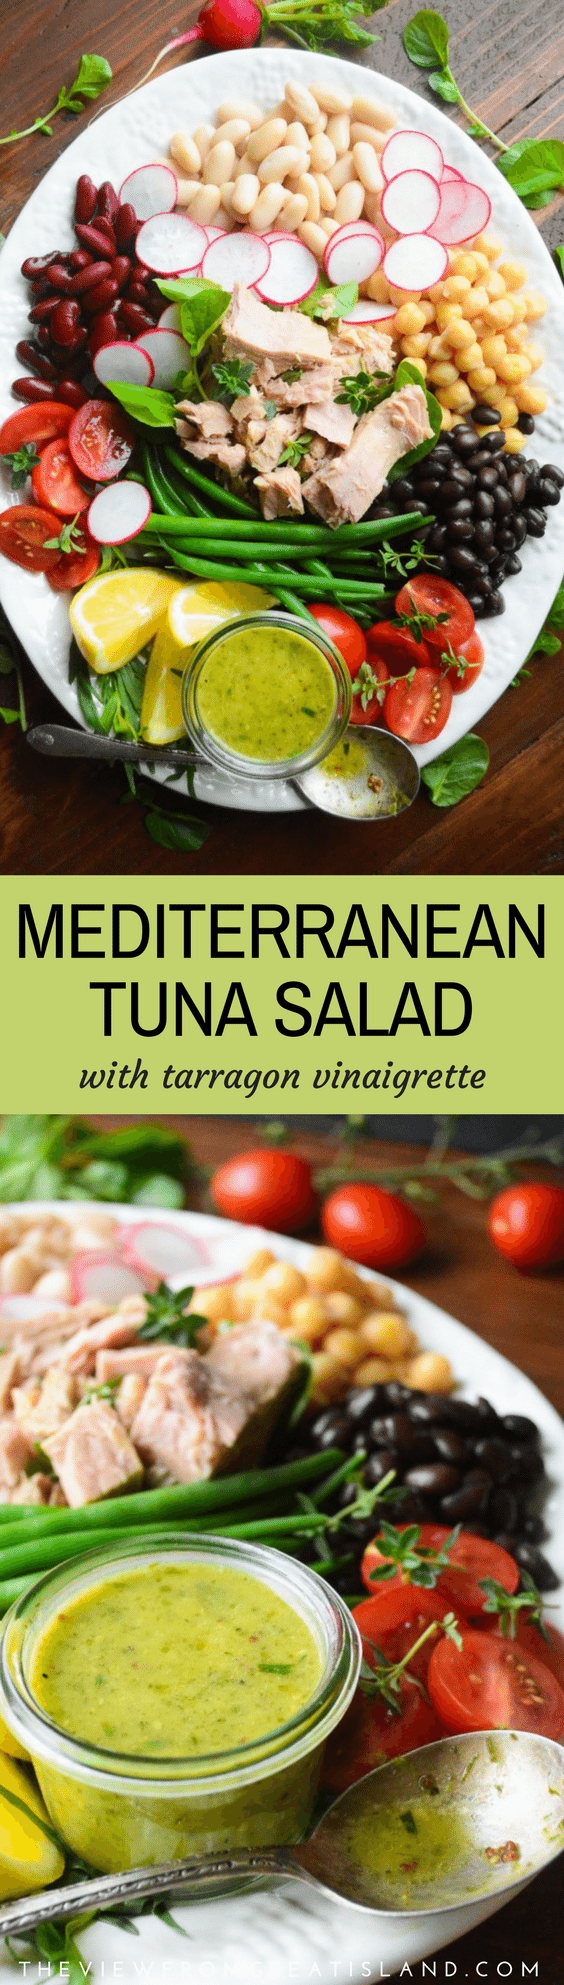 Use Accessories To Link Your Island To The Rest Of Your: Mediterranean Tuna Salad Plate With Tarragon Vinaigrette